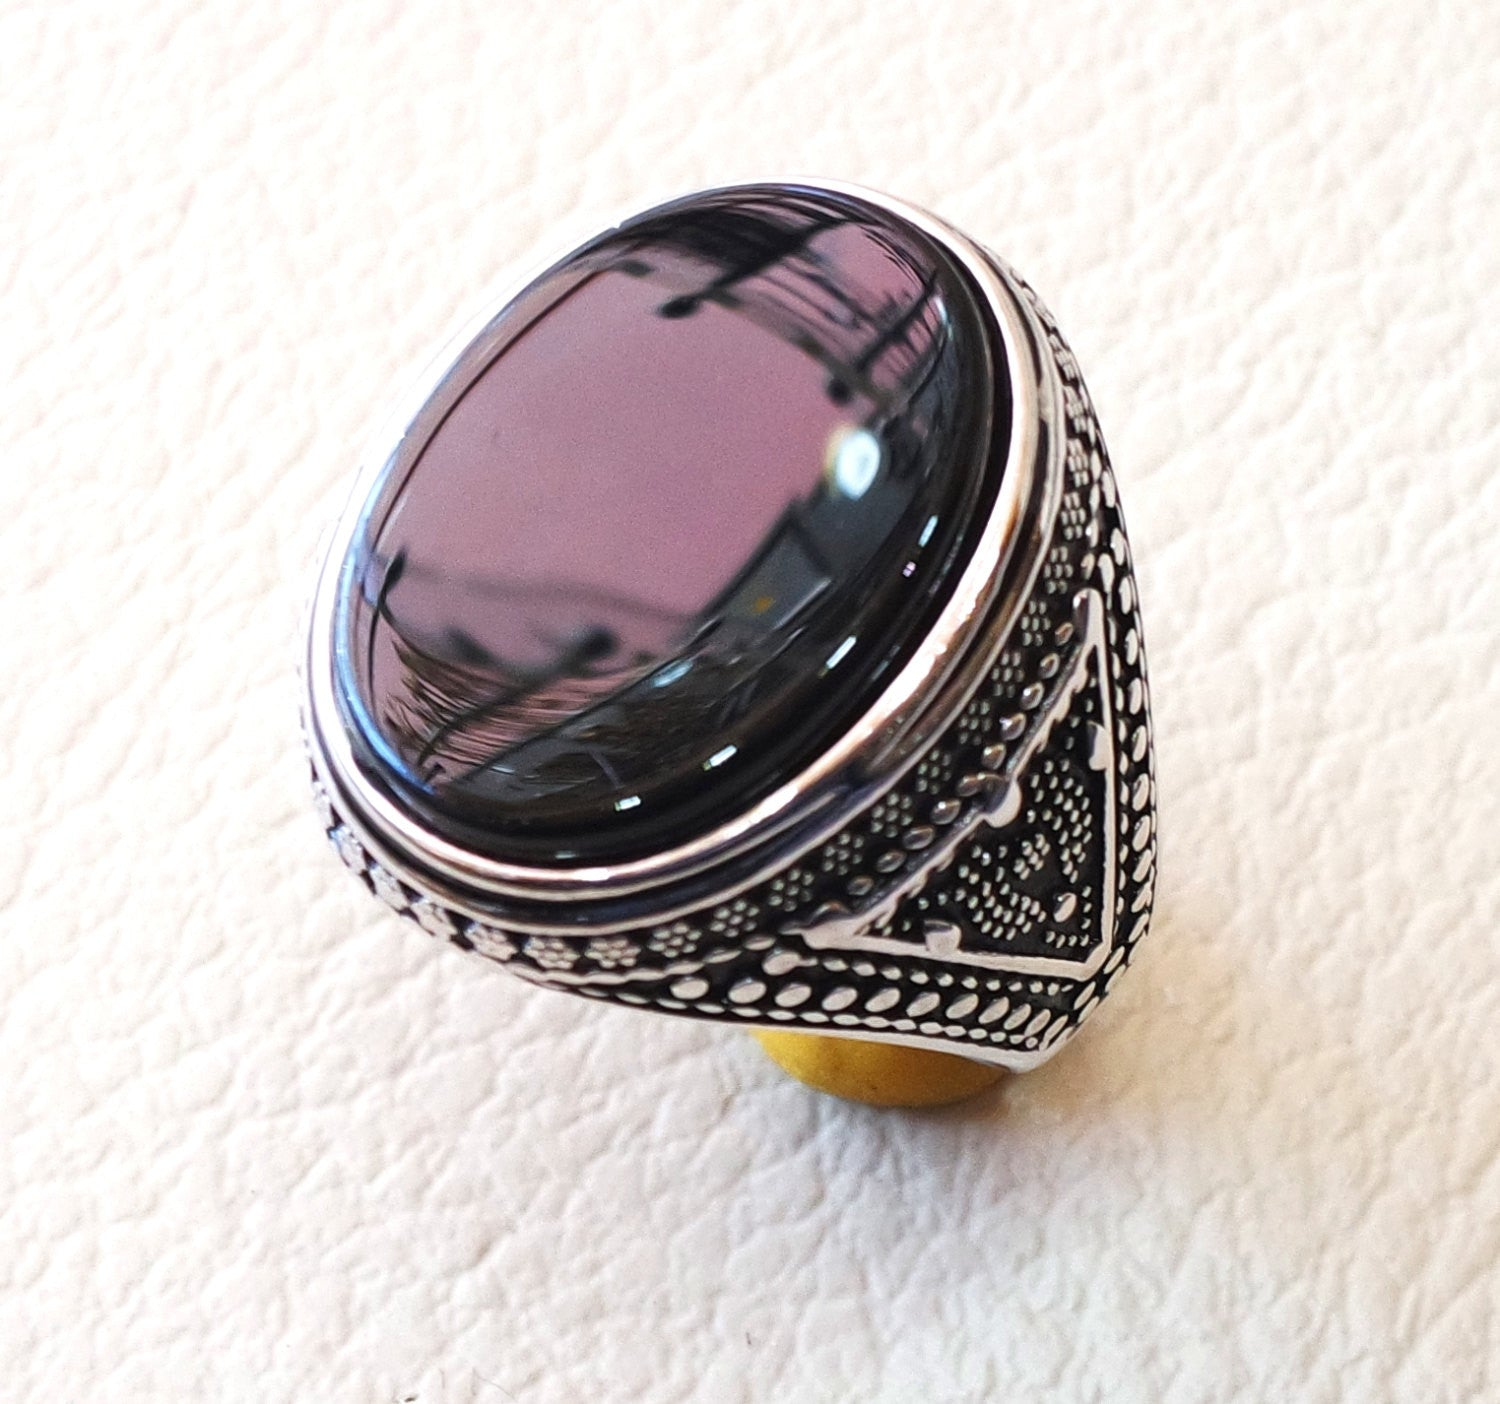 aqeeq natural agate onyx huge big stone oval black flat gem man ring sterling silver arabic middle eastern turkey style fast shipping